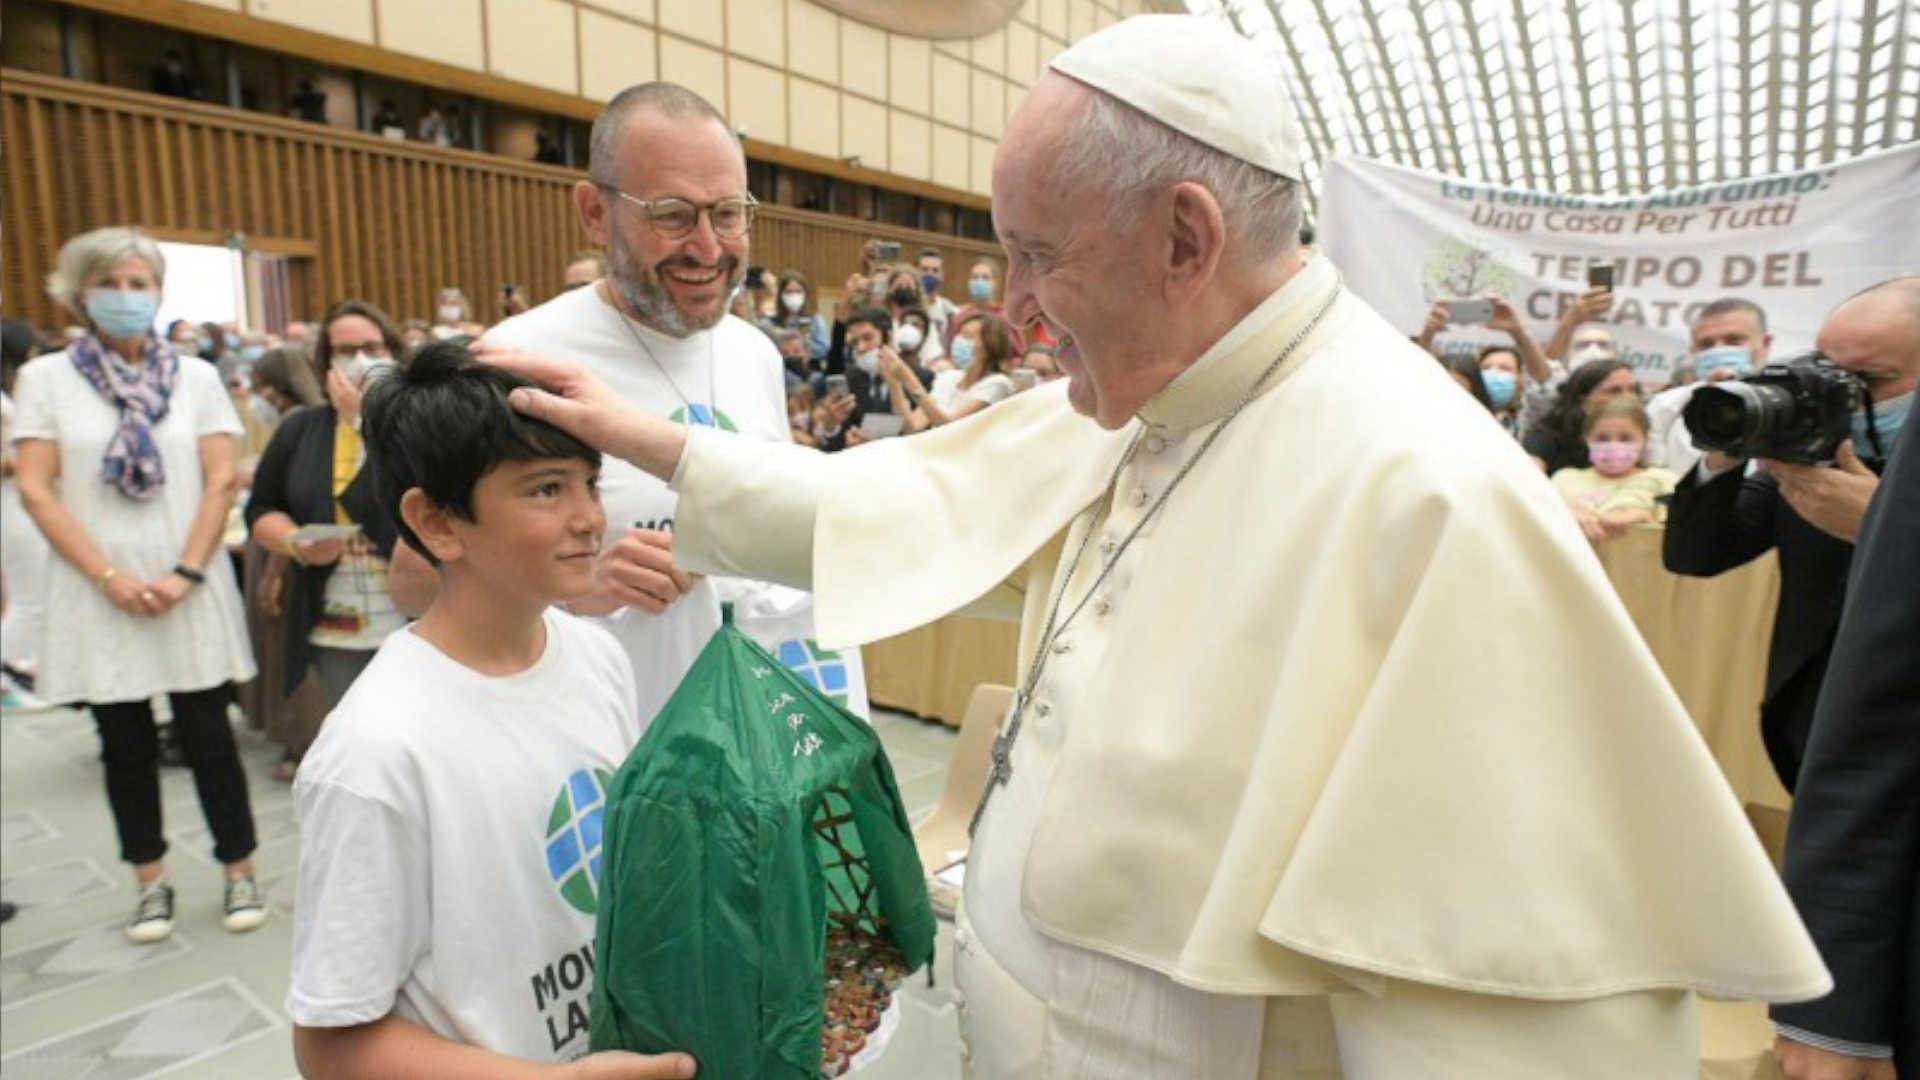 Pope Francis receives the gift of a tent to start the Season of Creation. Photo credit: Vatican News.